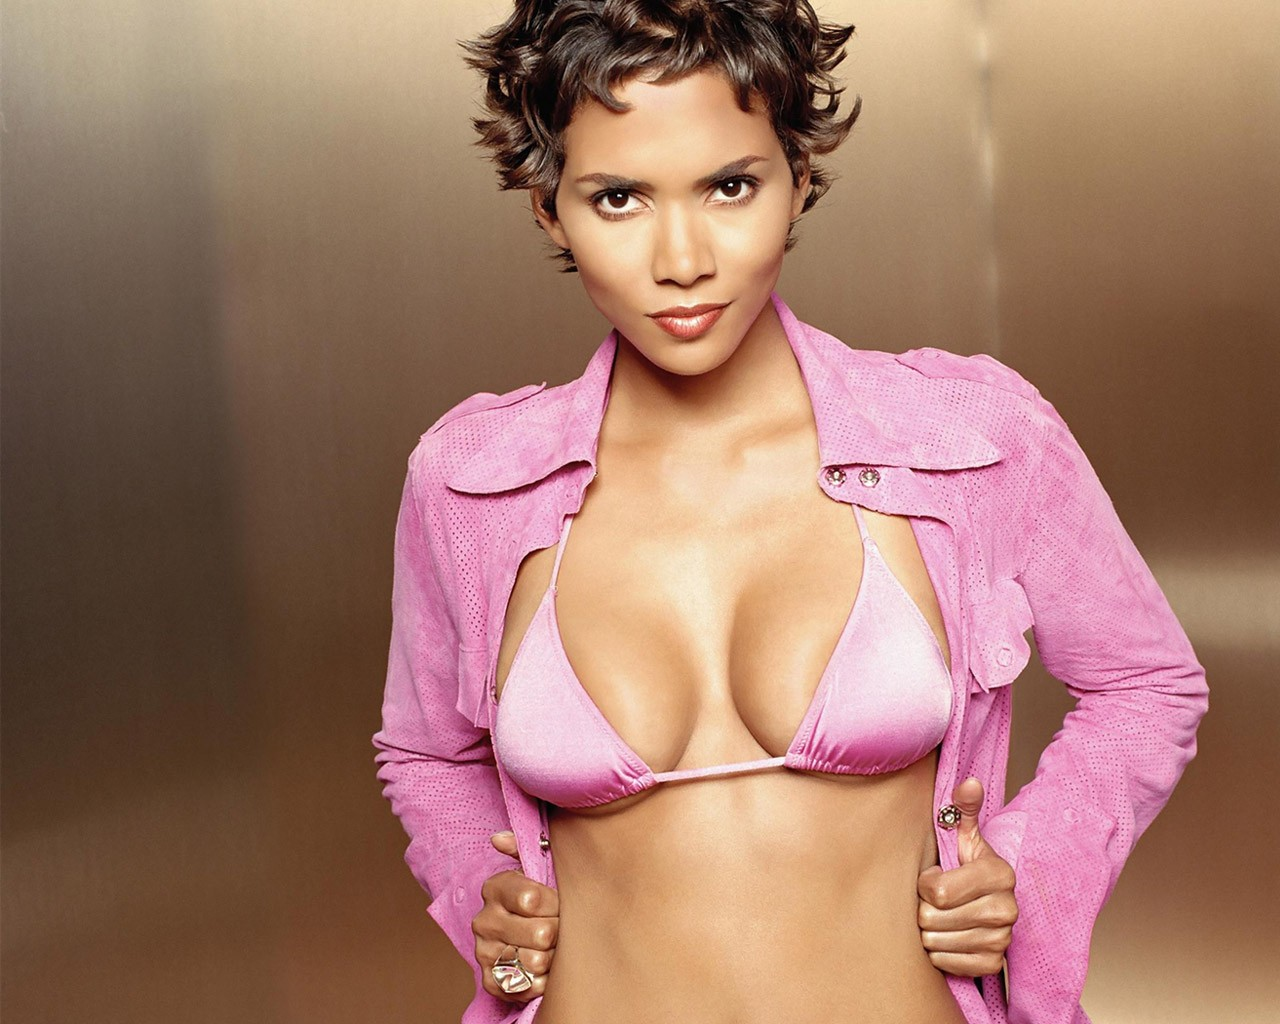 Halle Berry Cute Wallpaper Star 10 Hollywood Actress Halle Berry Sexy Wallpapers